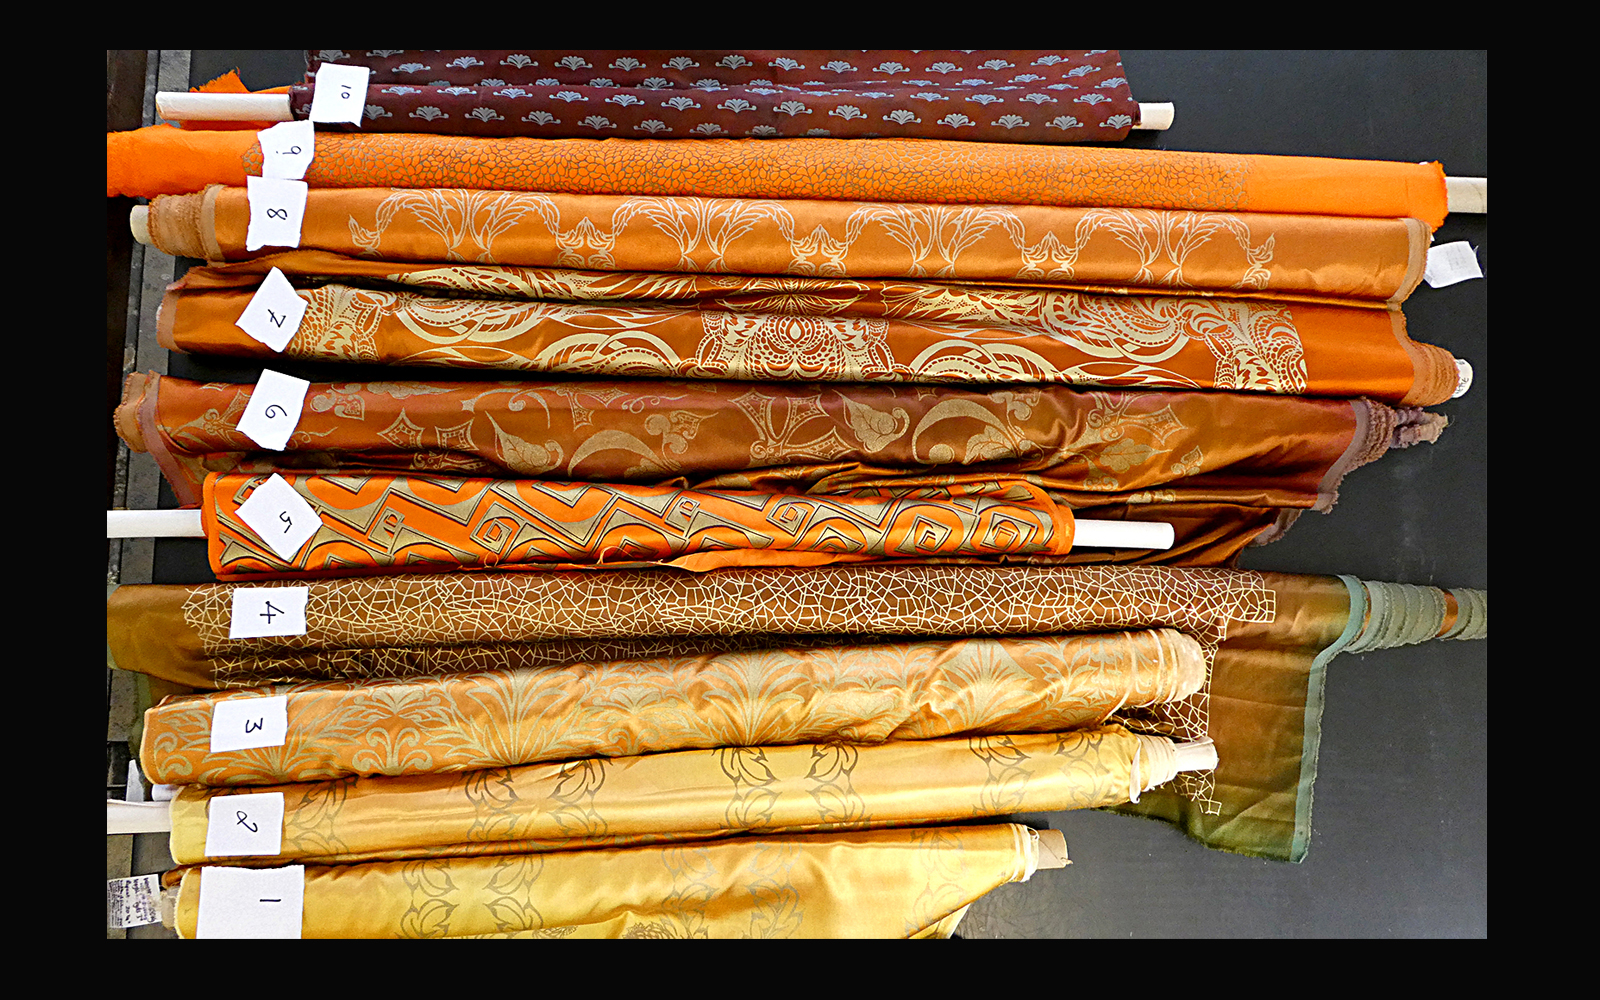 Fabric remnants drama opera golds ginger orange